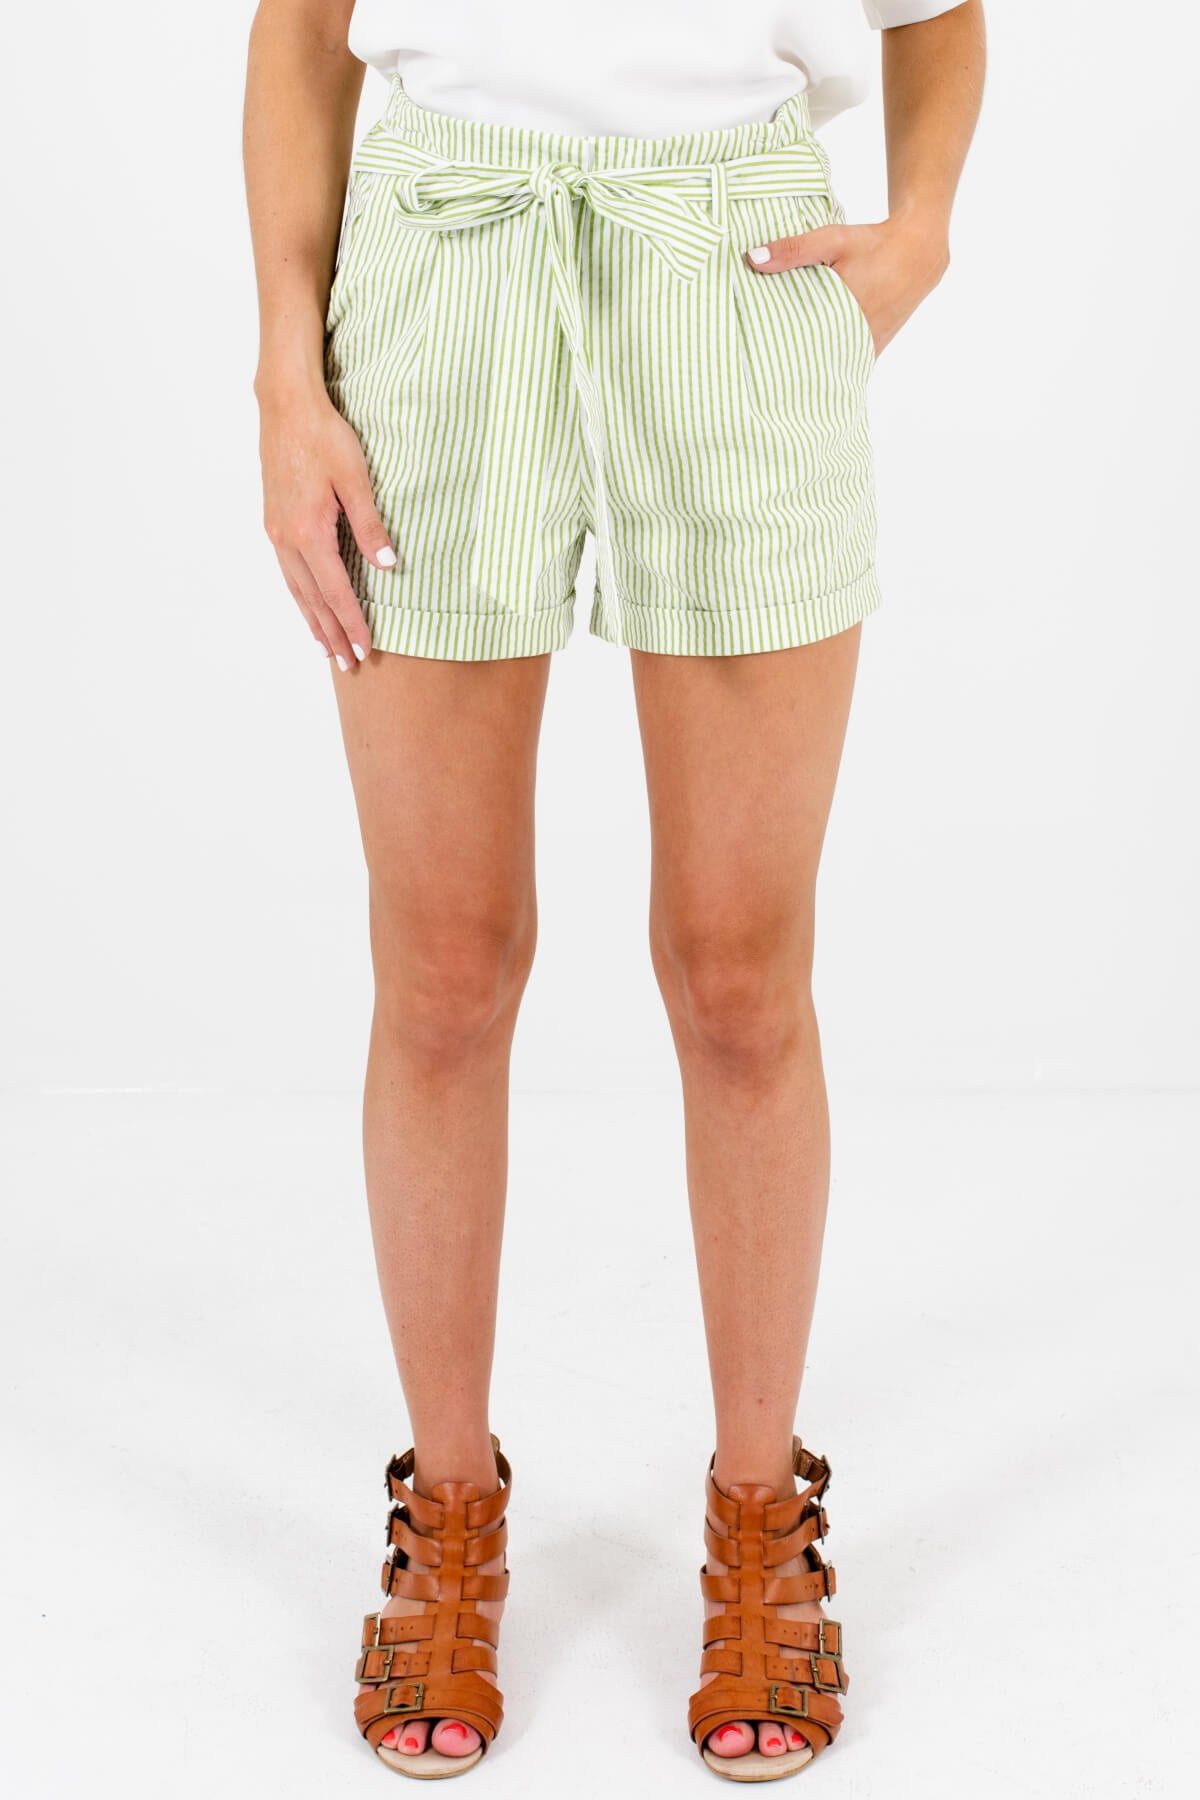 Green White Striped Shorts with Pockets and Waist-Tie Detail